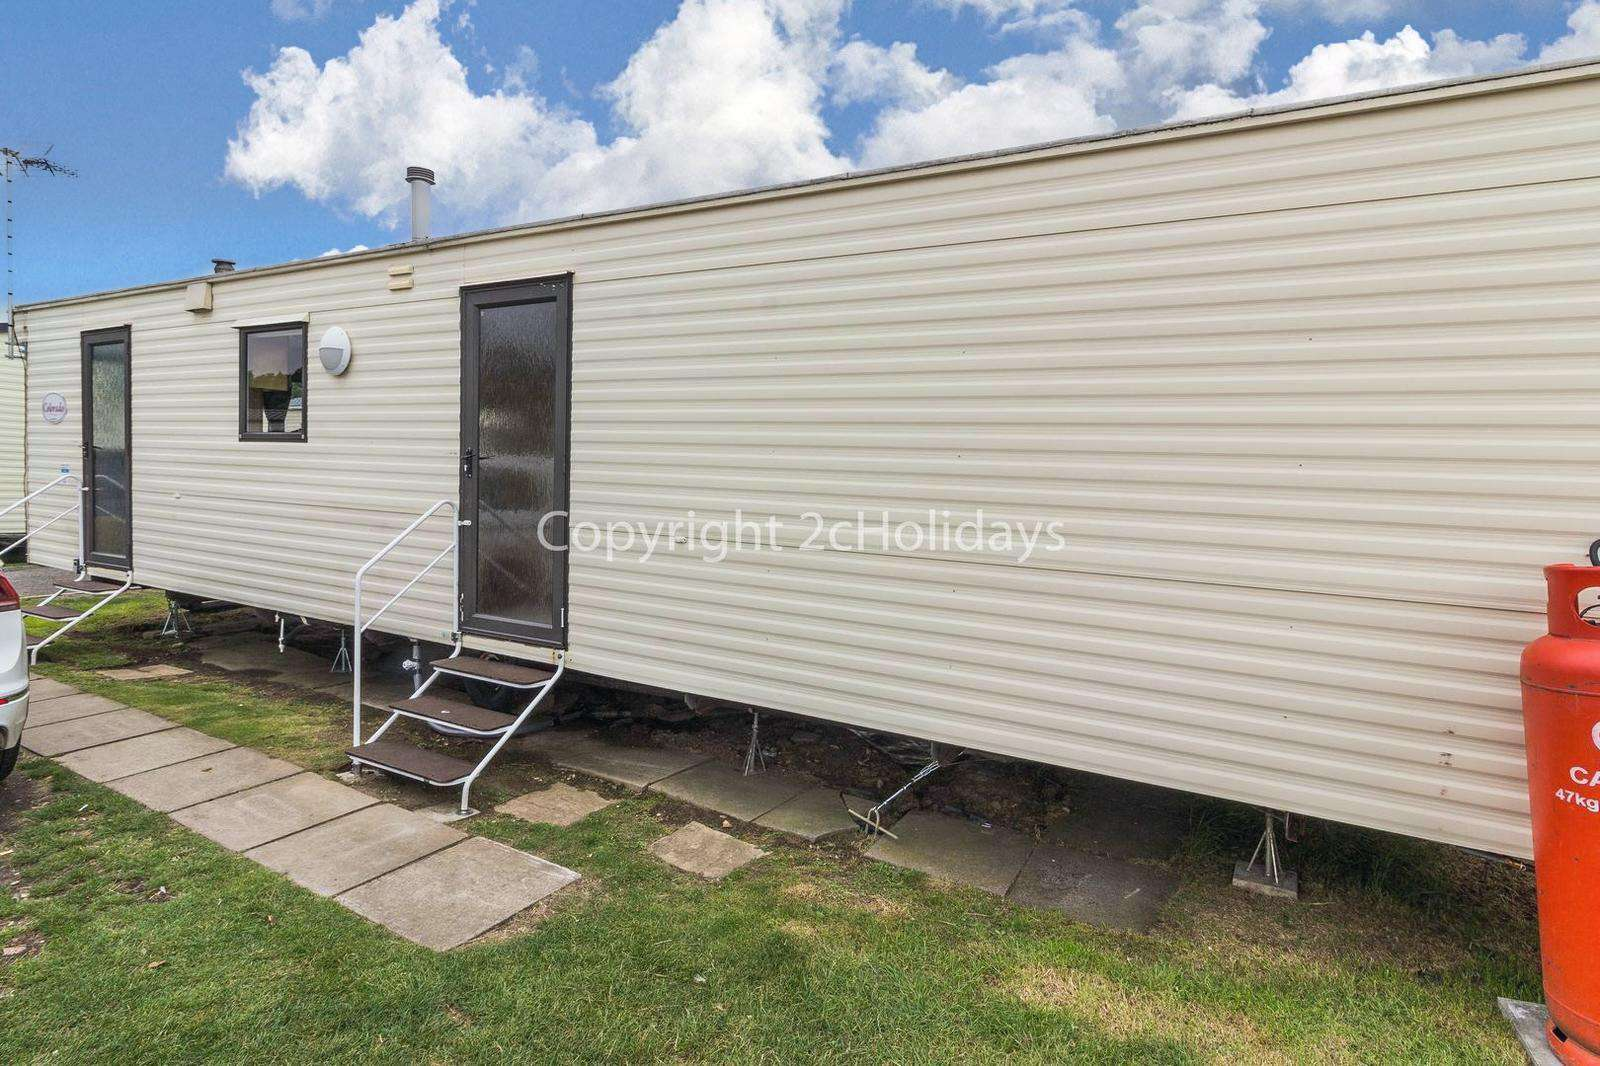 Great caravan, only a 5 minute walk to the beach!